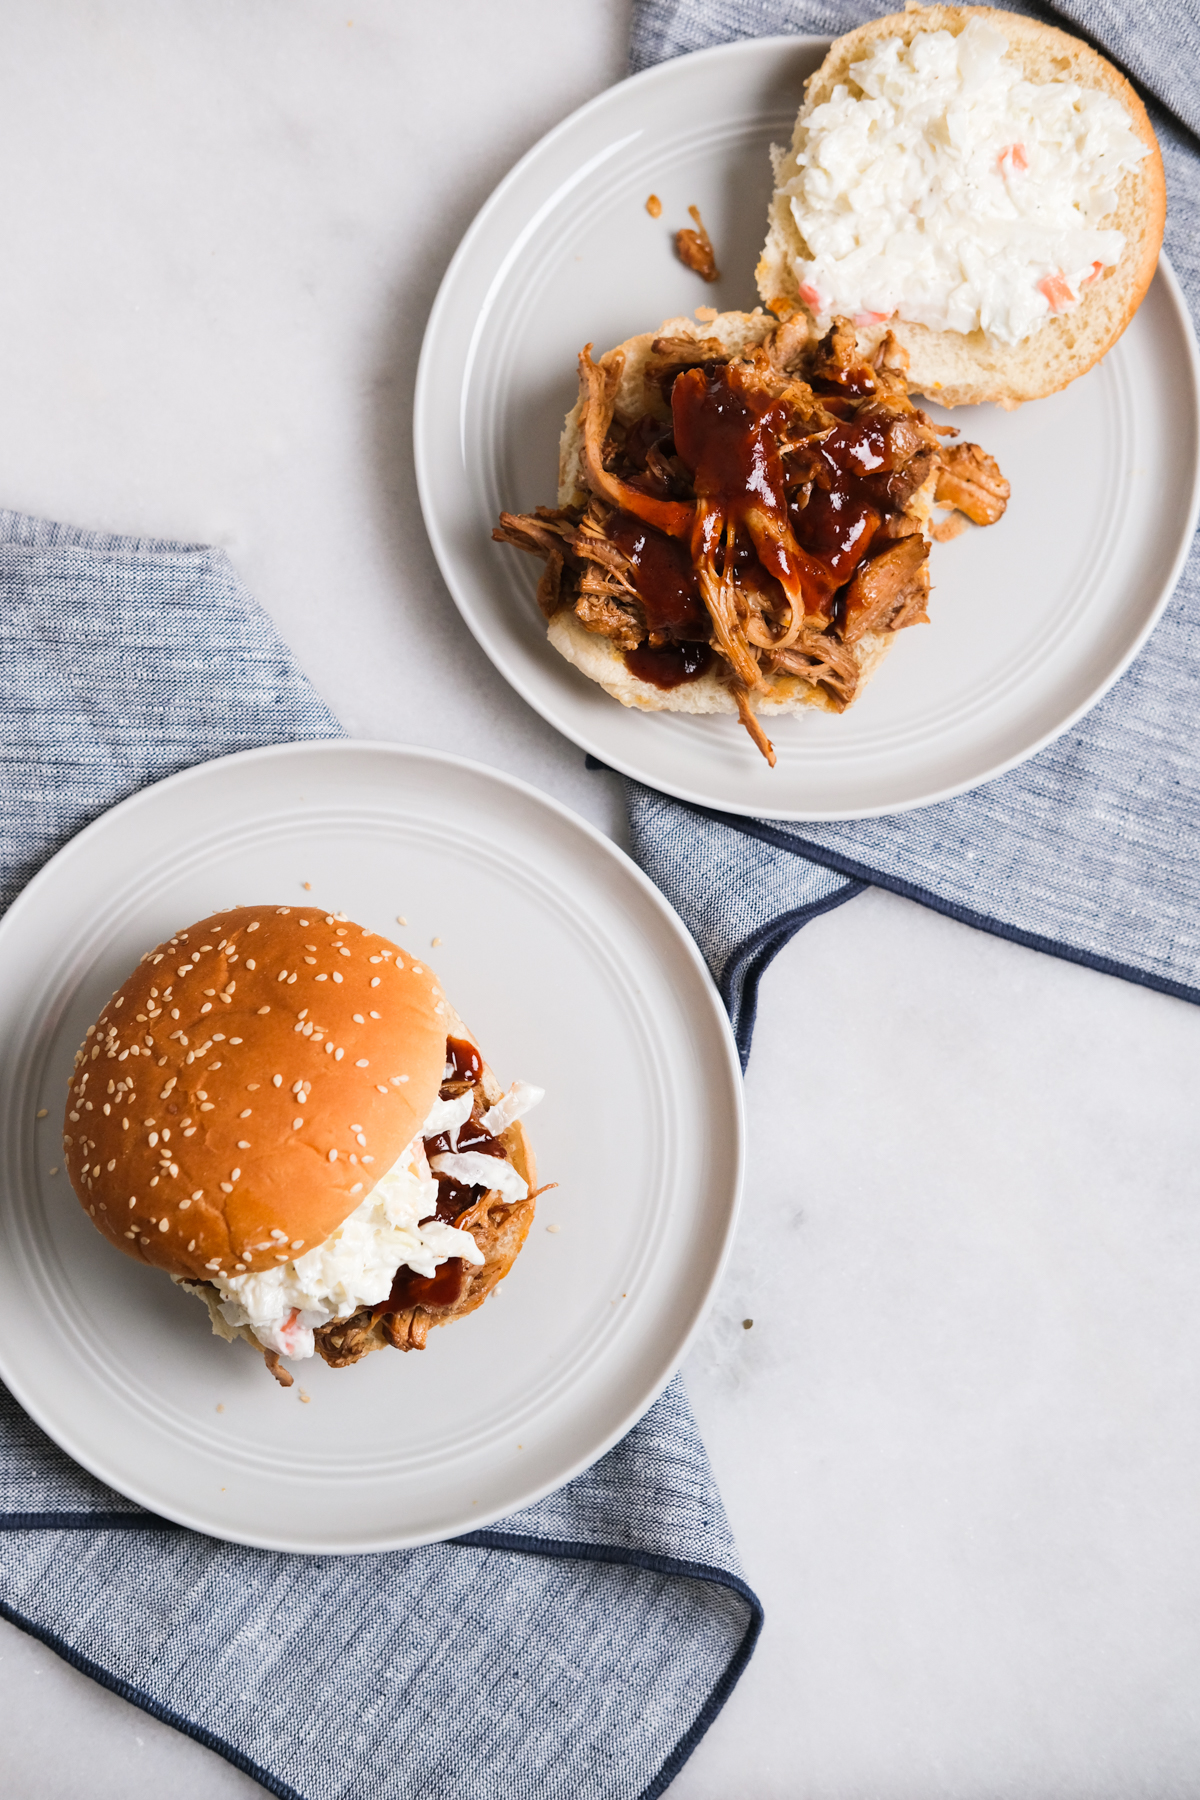 bbq pulled pork sandwiches with sauce